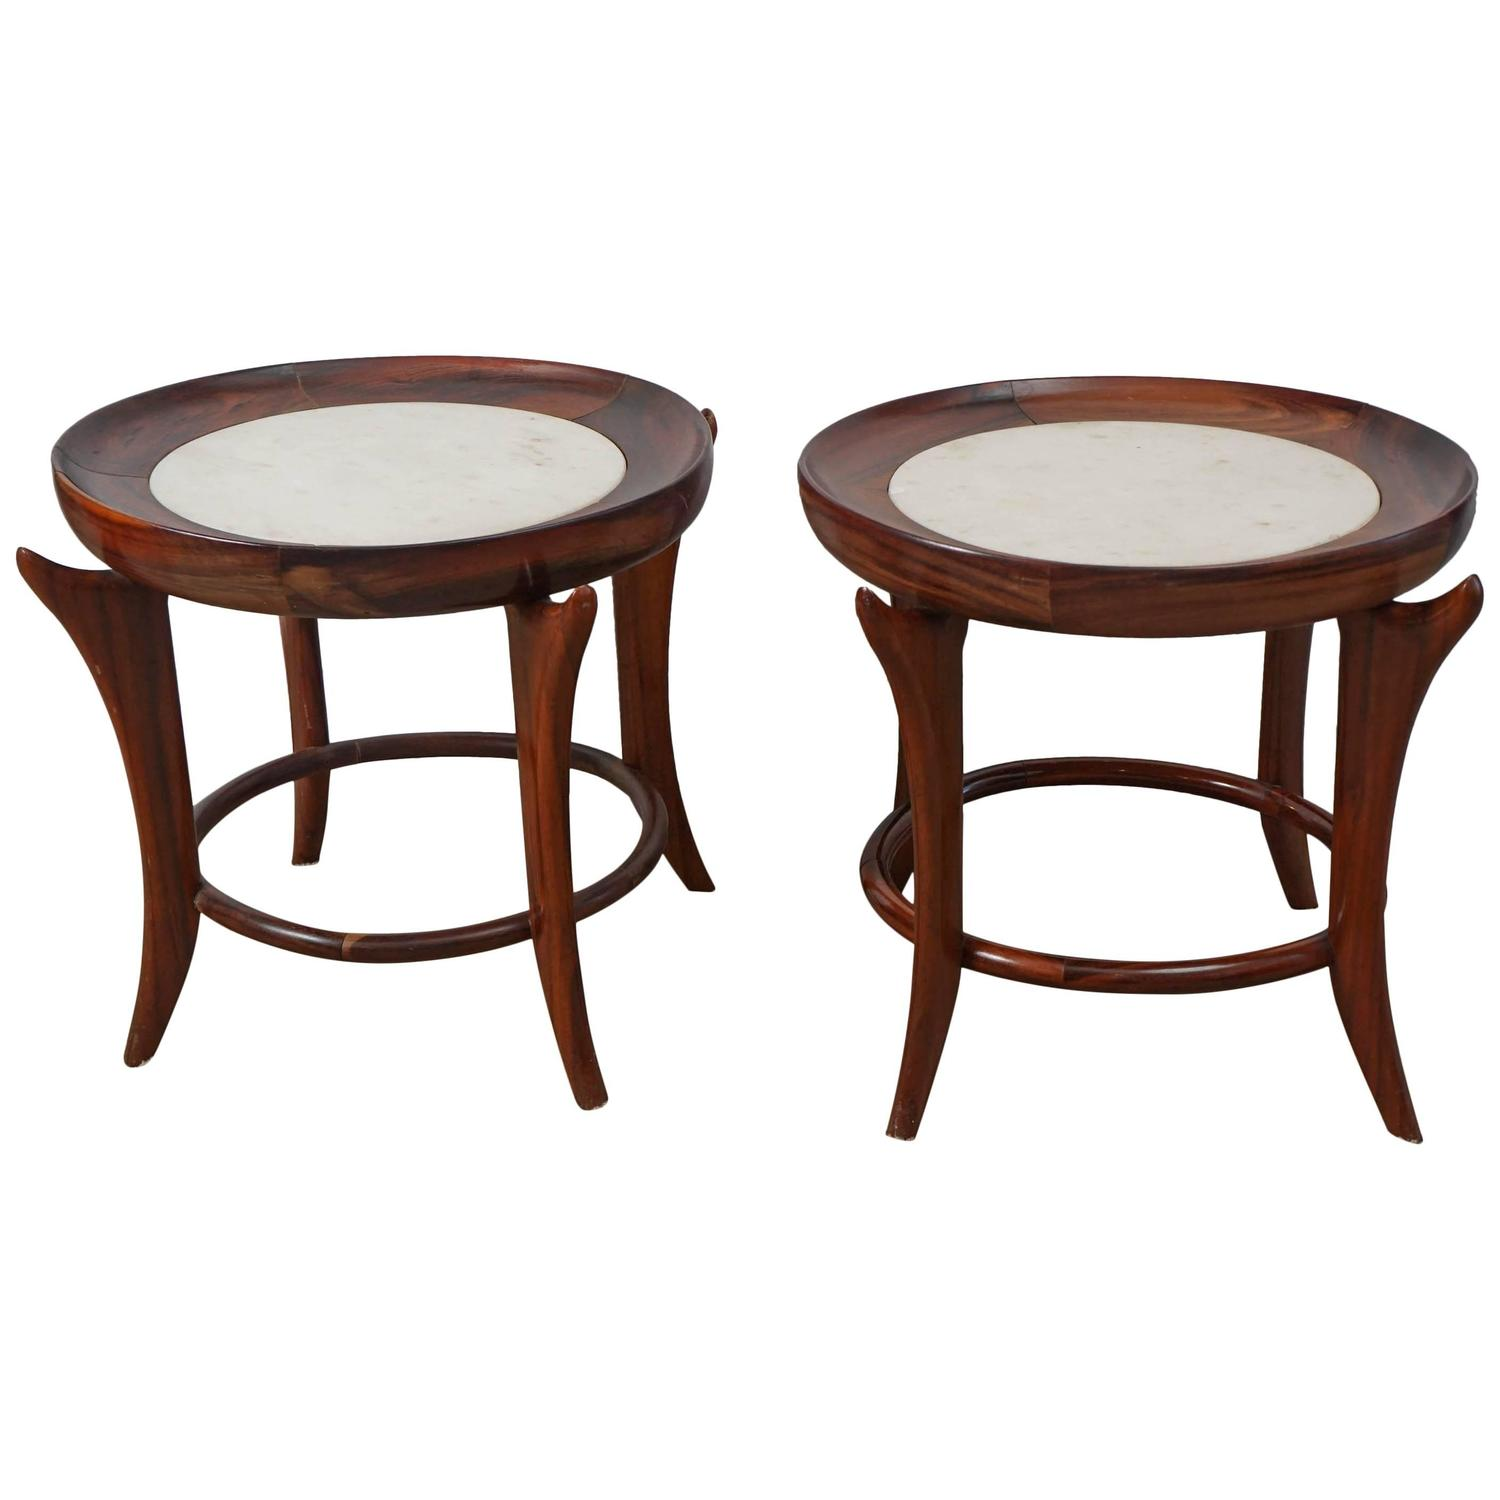 Pair of brazilian side tables mid century modern at 1stdibs - Brazilian mid century modern furniture ...